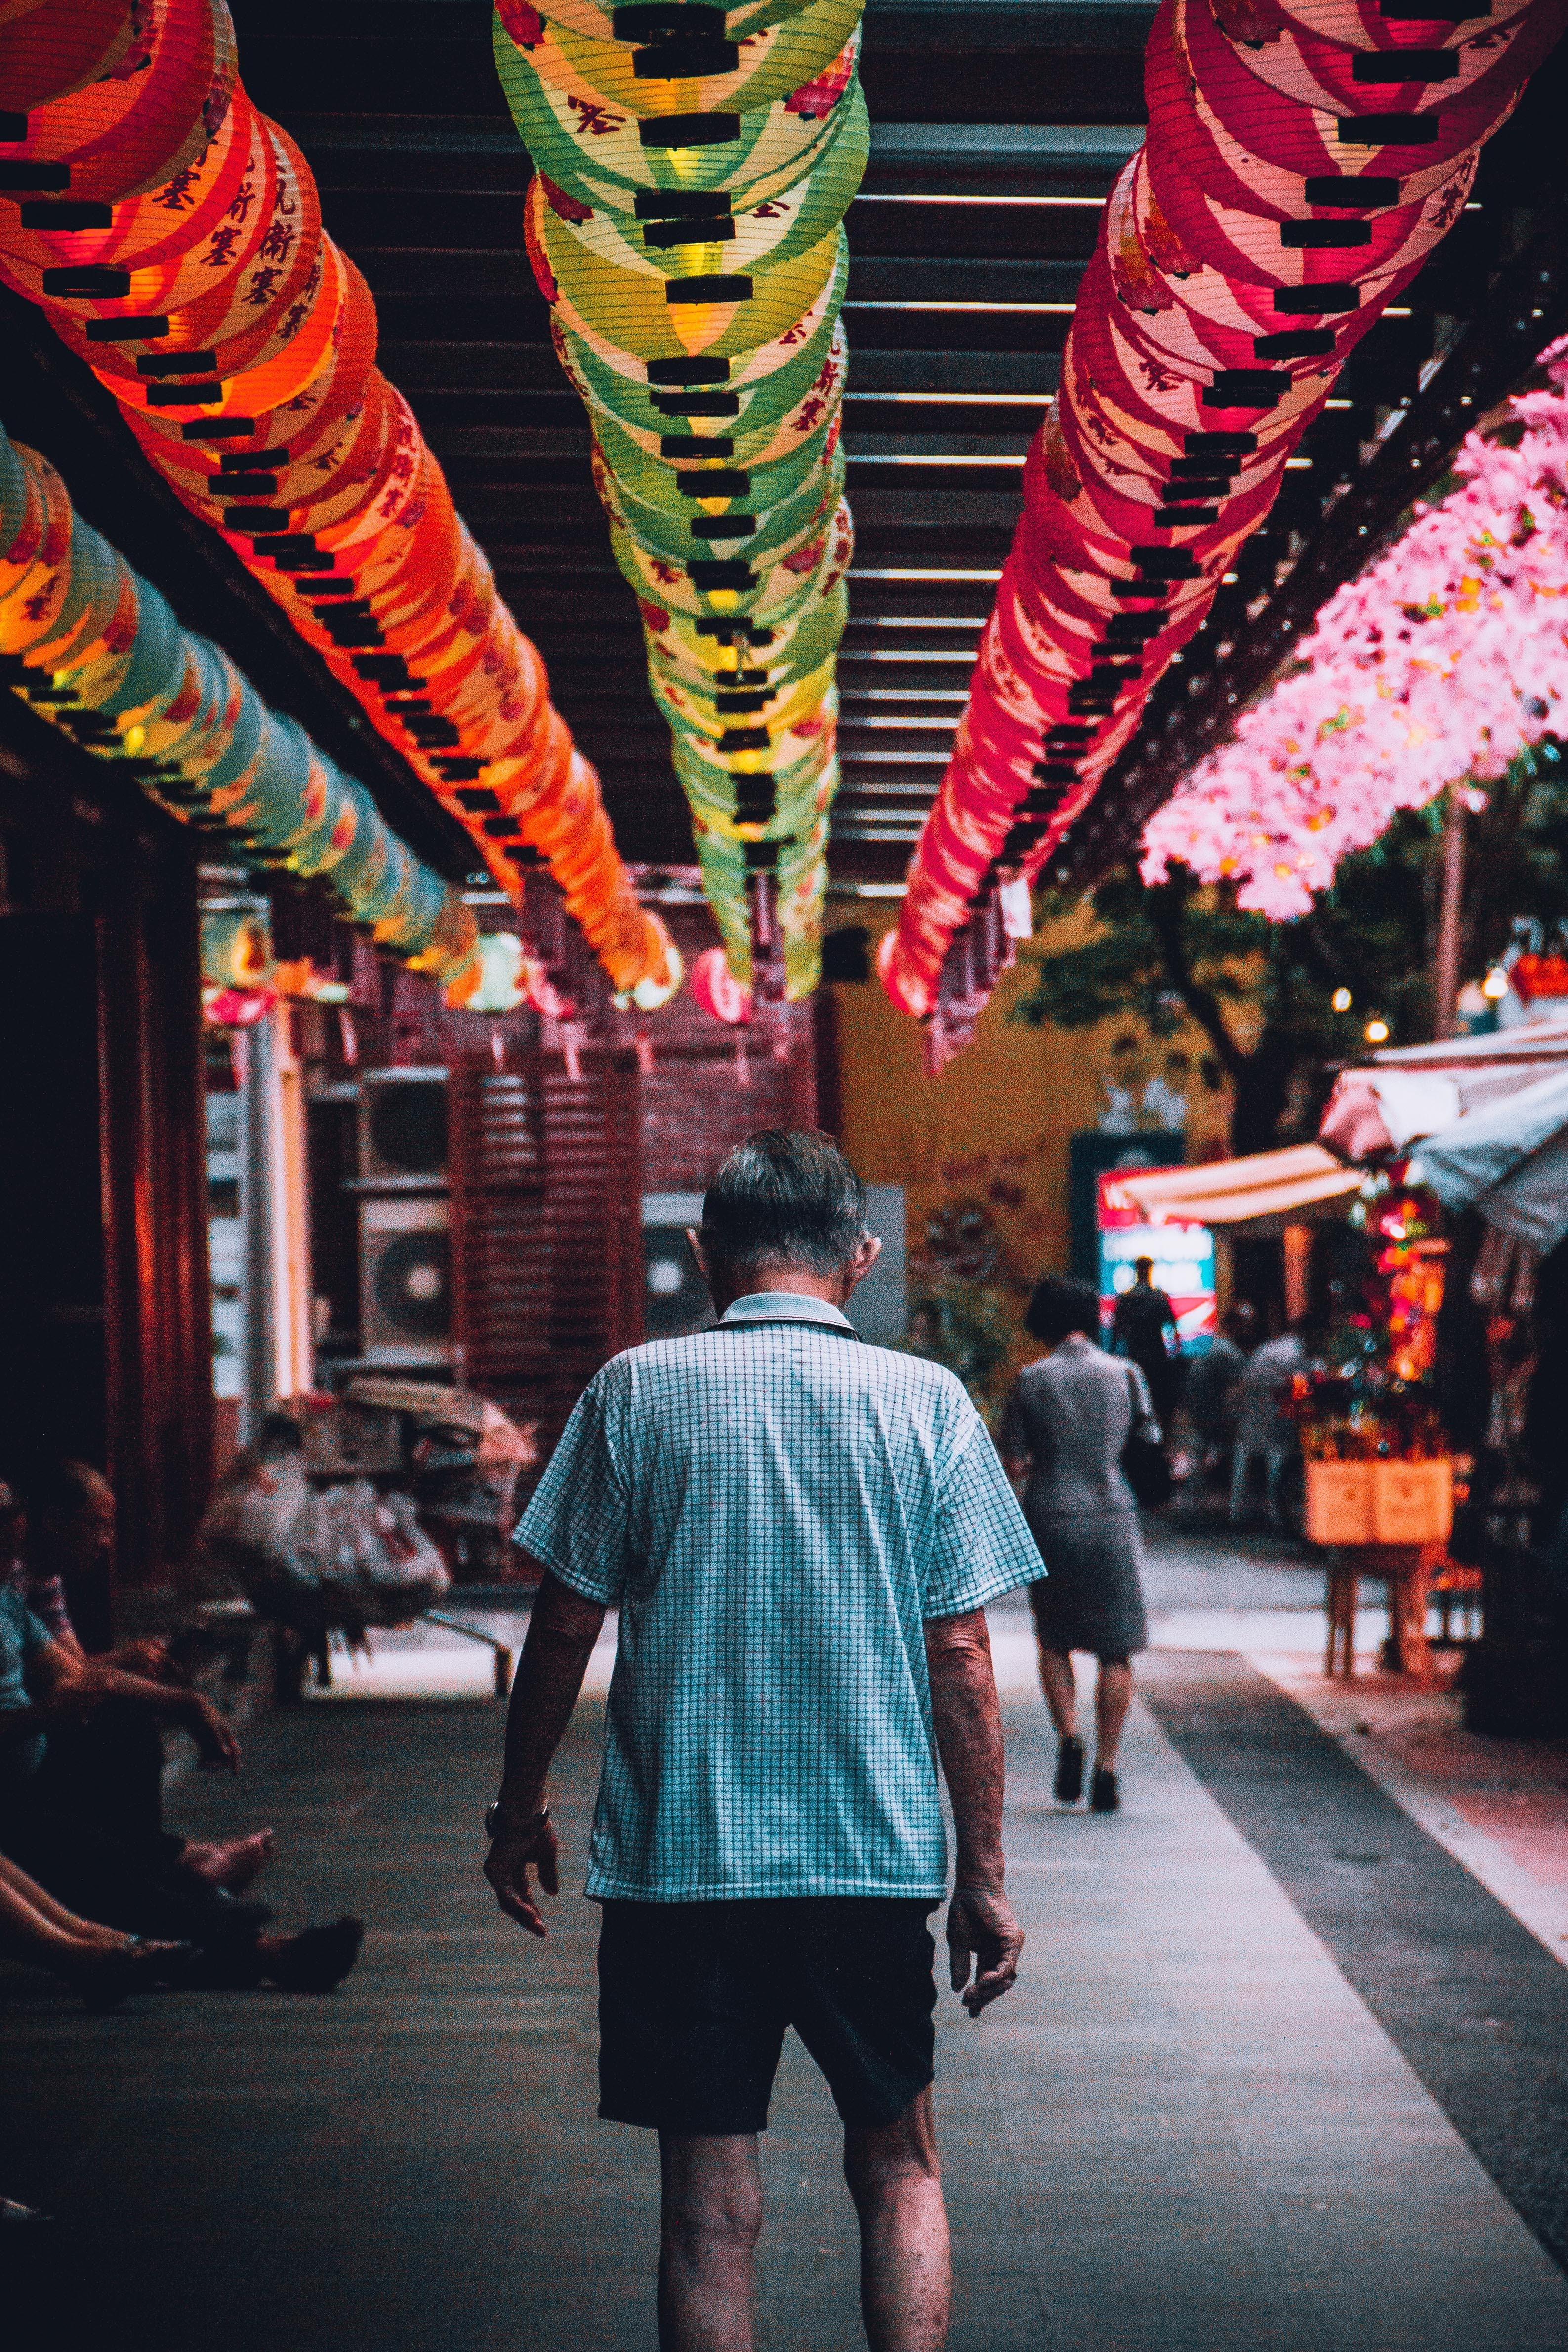 An elderly man strolling in the marketplace in Singapore's Chinatown